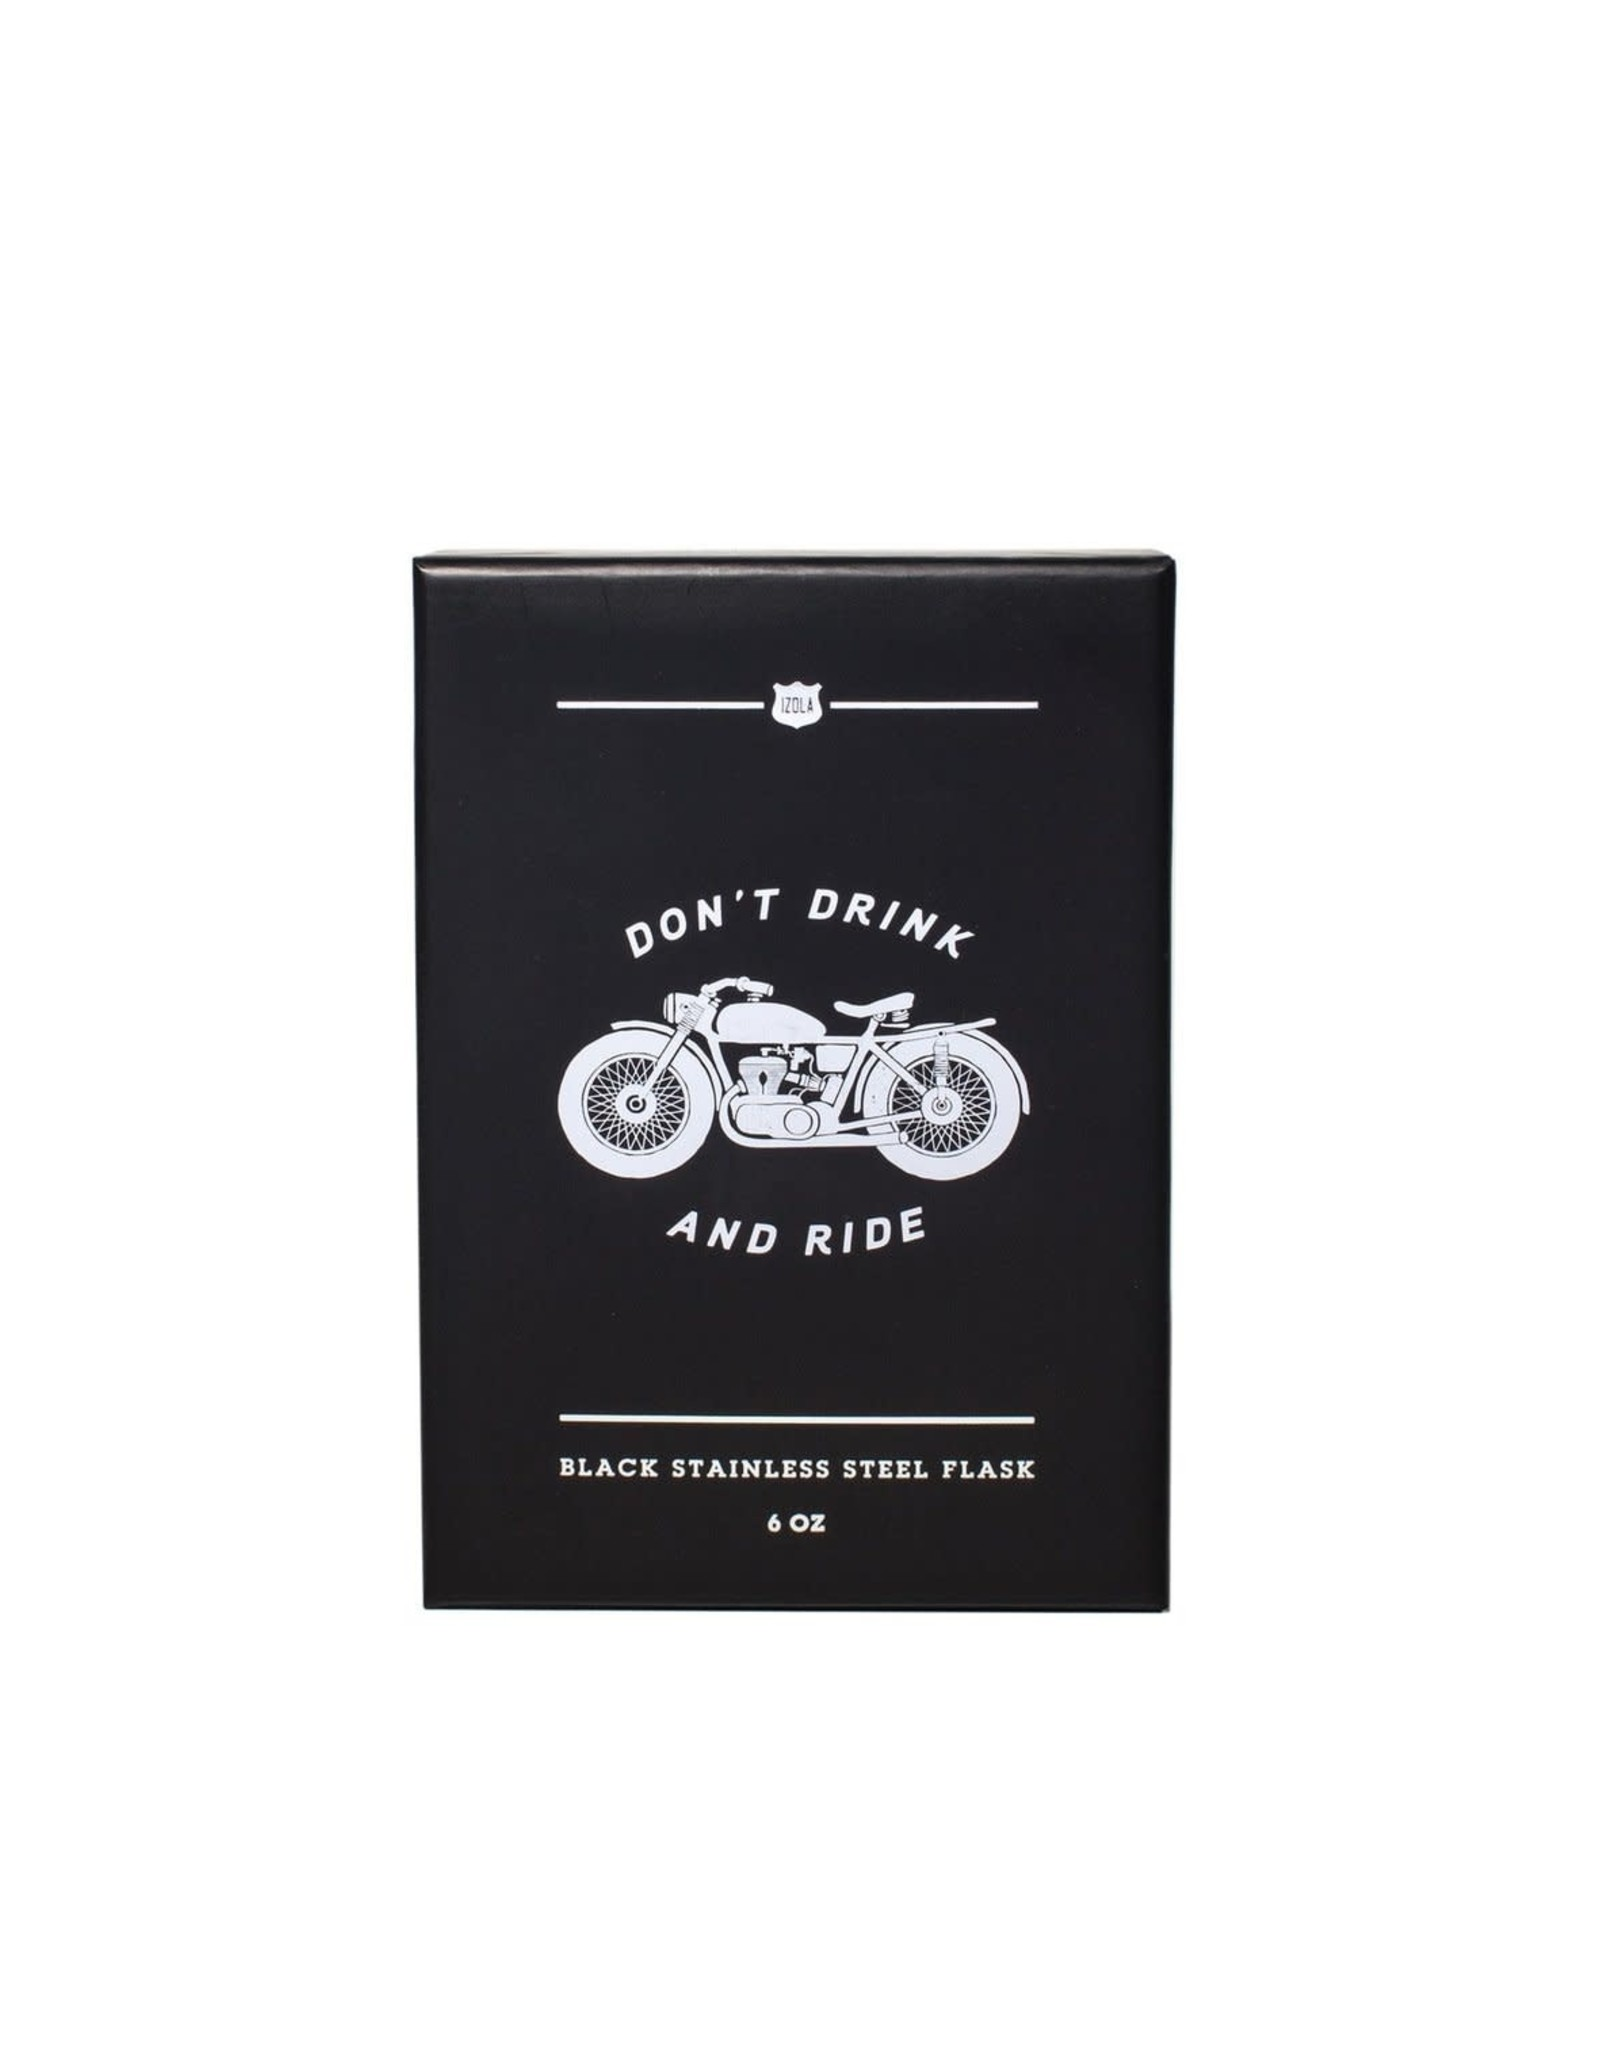 Don't Drink and Ride (Motorcycle) 6oz Flask, Black